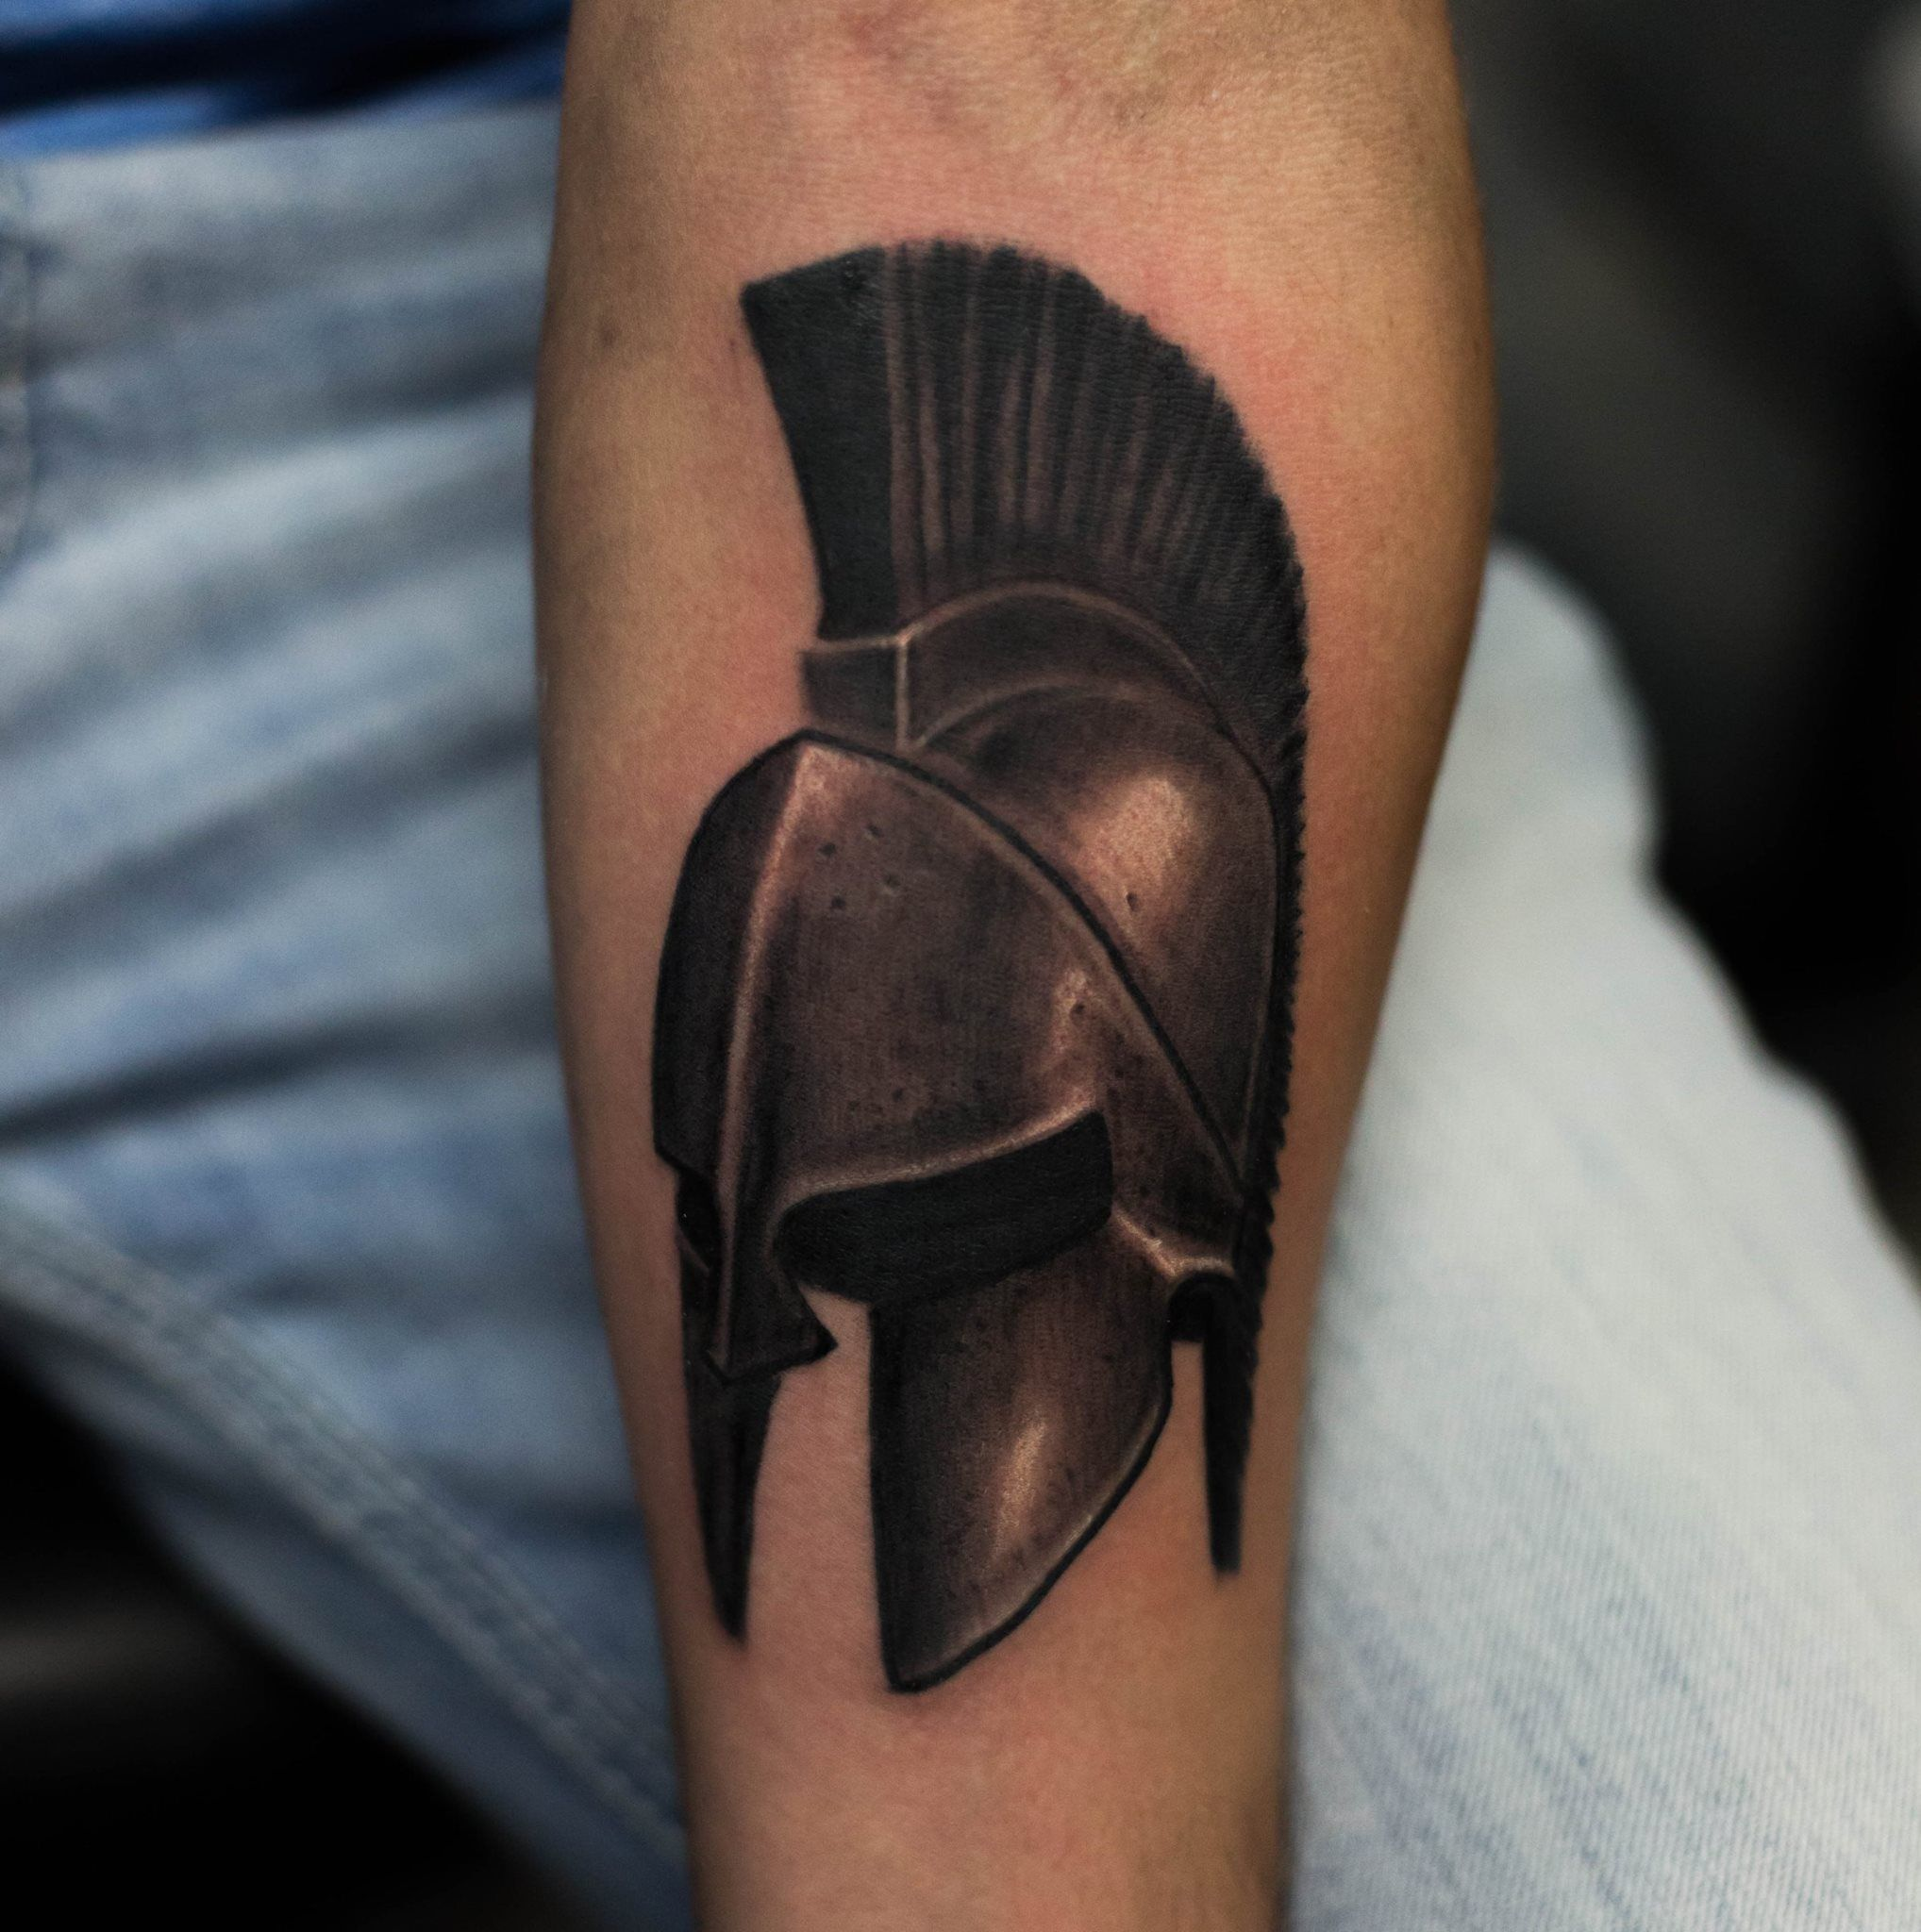 spartan helmet tattoo tattoos pinterest spartan helmet tattoo helmet tattoo and spartan. Black Bedroom Furniture Sets. Home Design Ideas